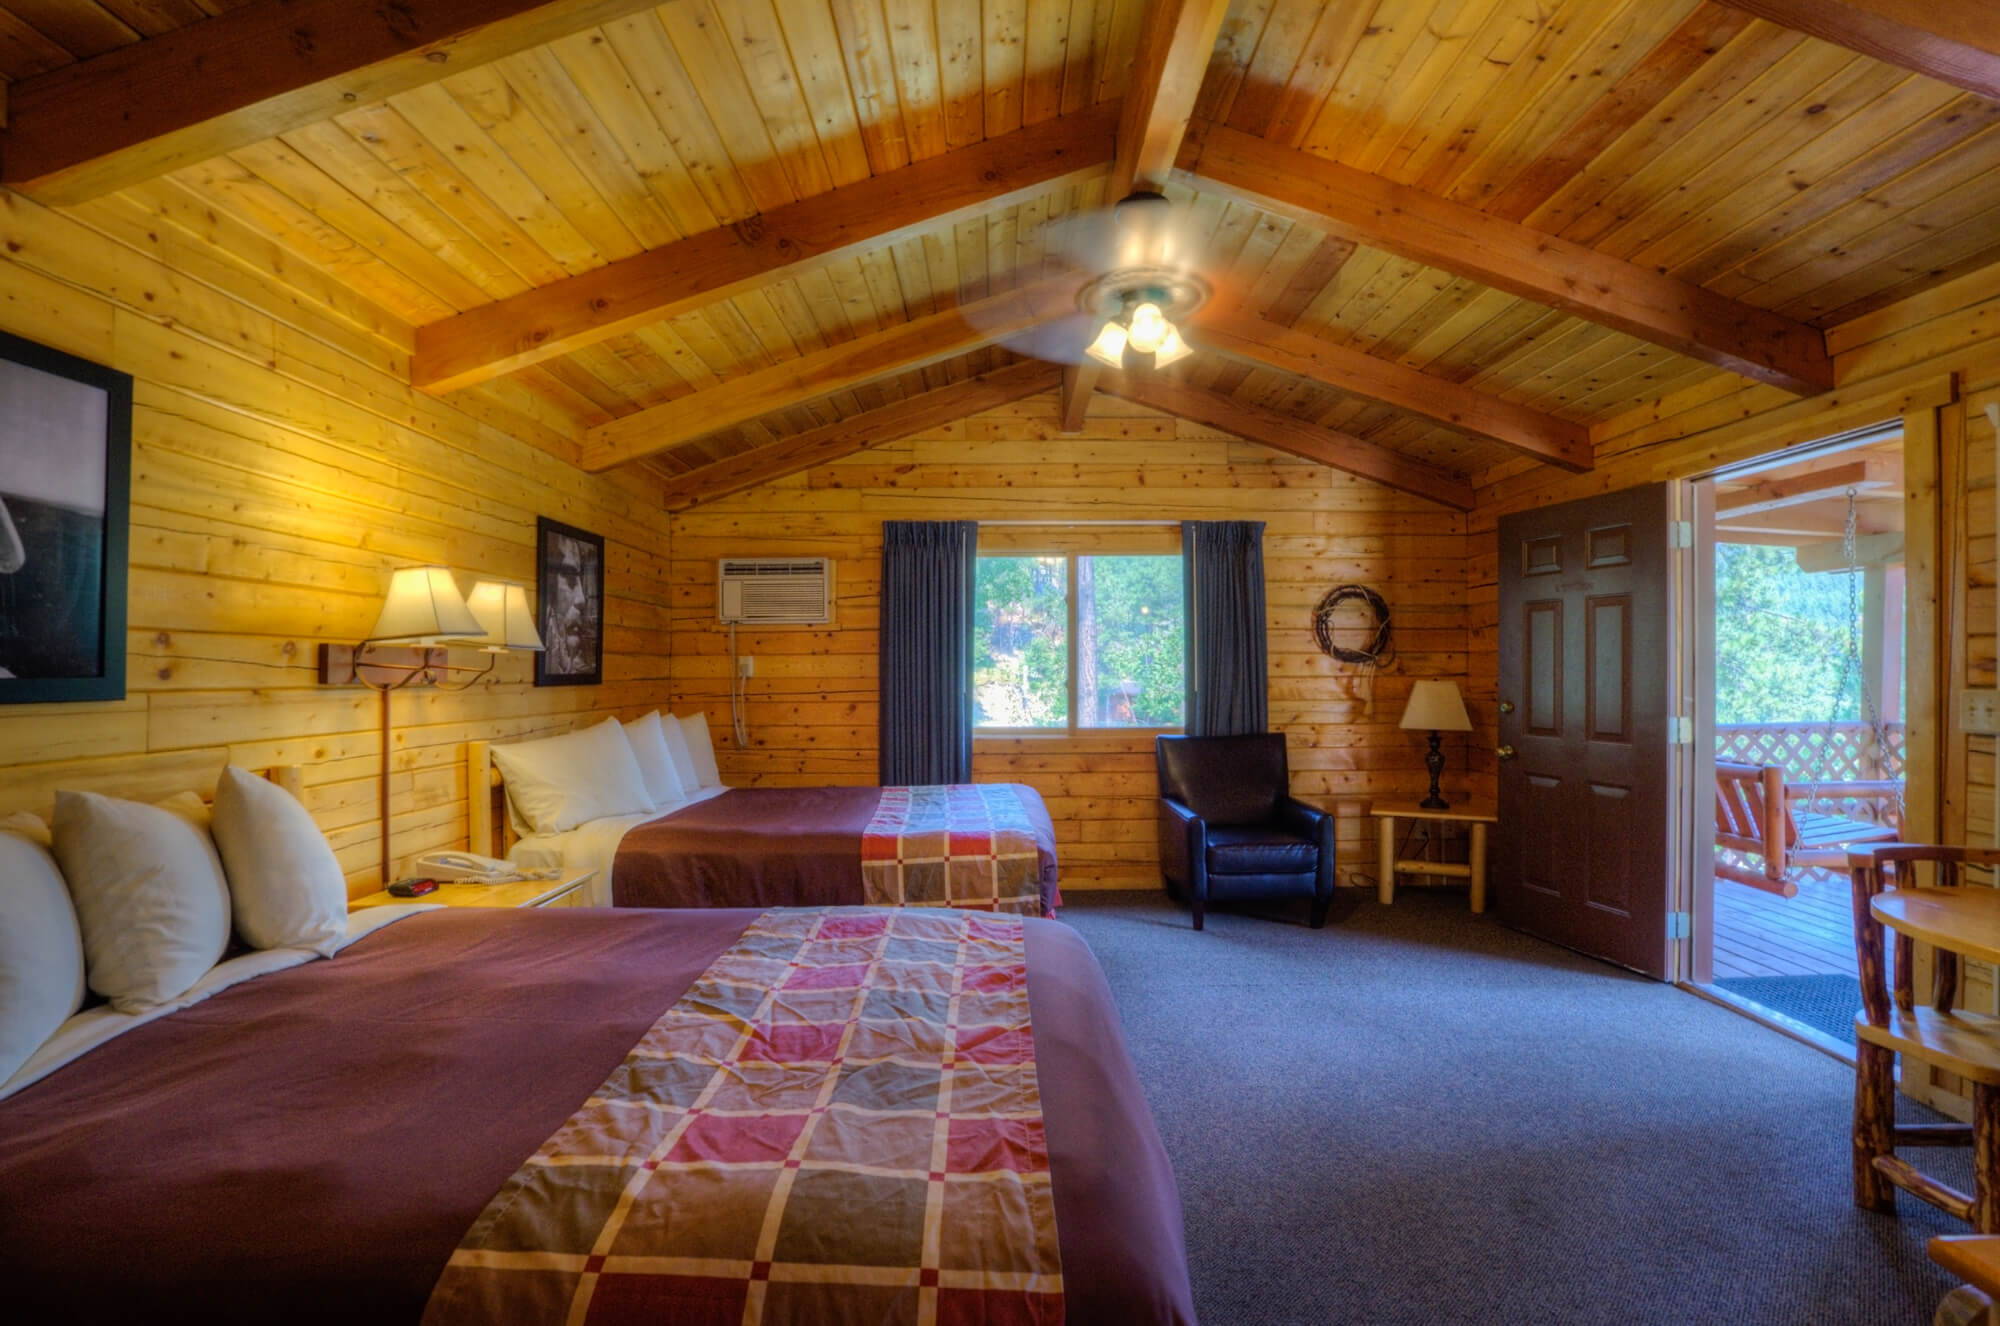 american intro hocking lodging ohio heartland rentals hills quality cabins association cabin